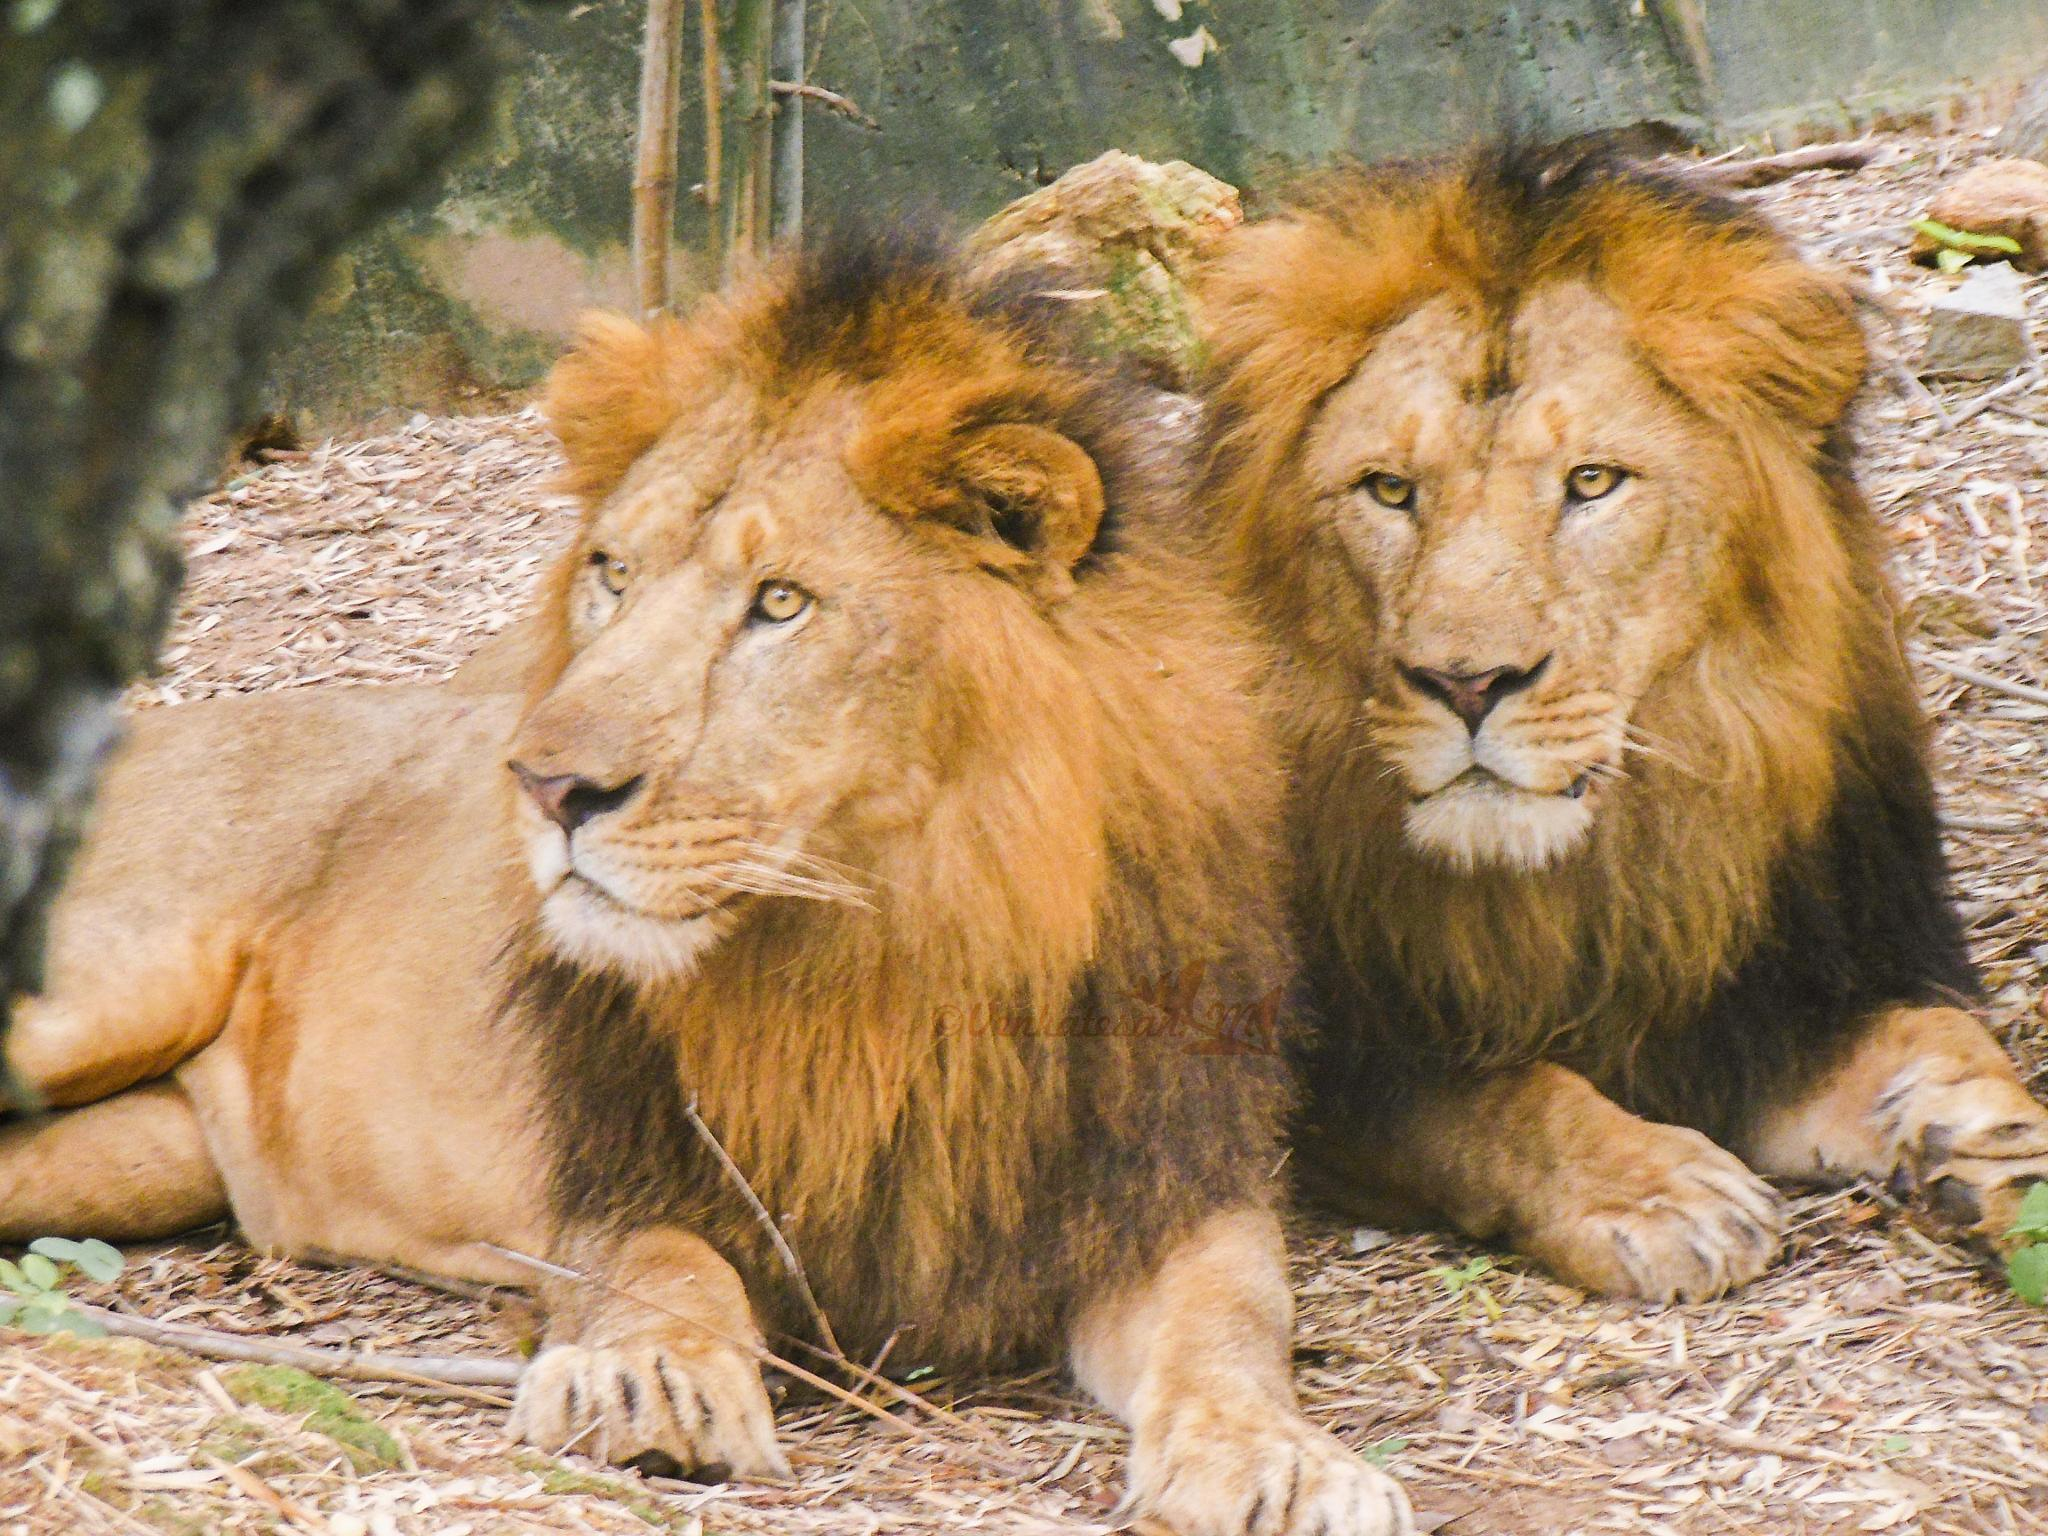 Lions by Sathyavenkat